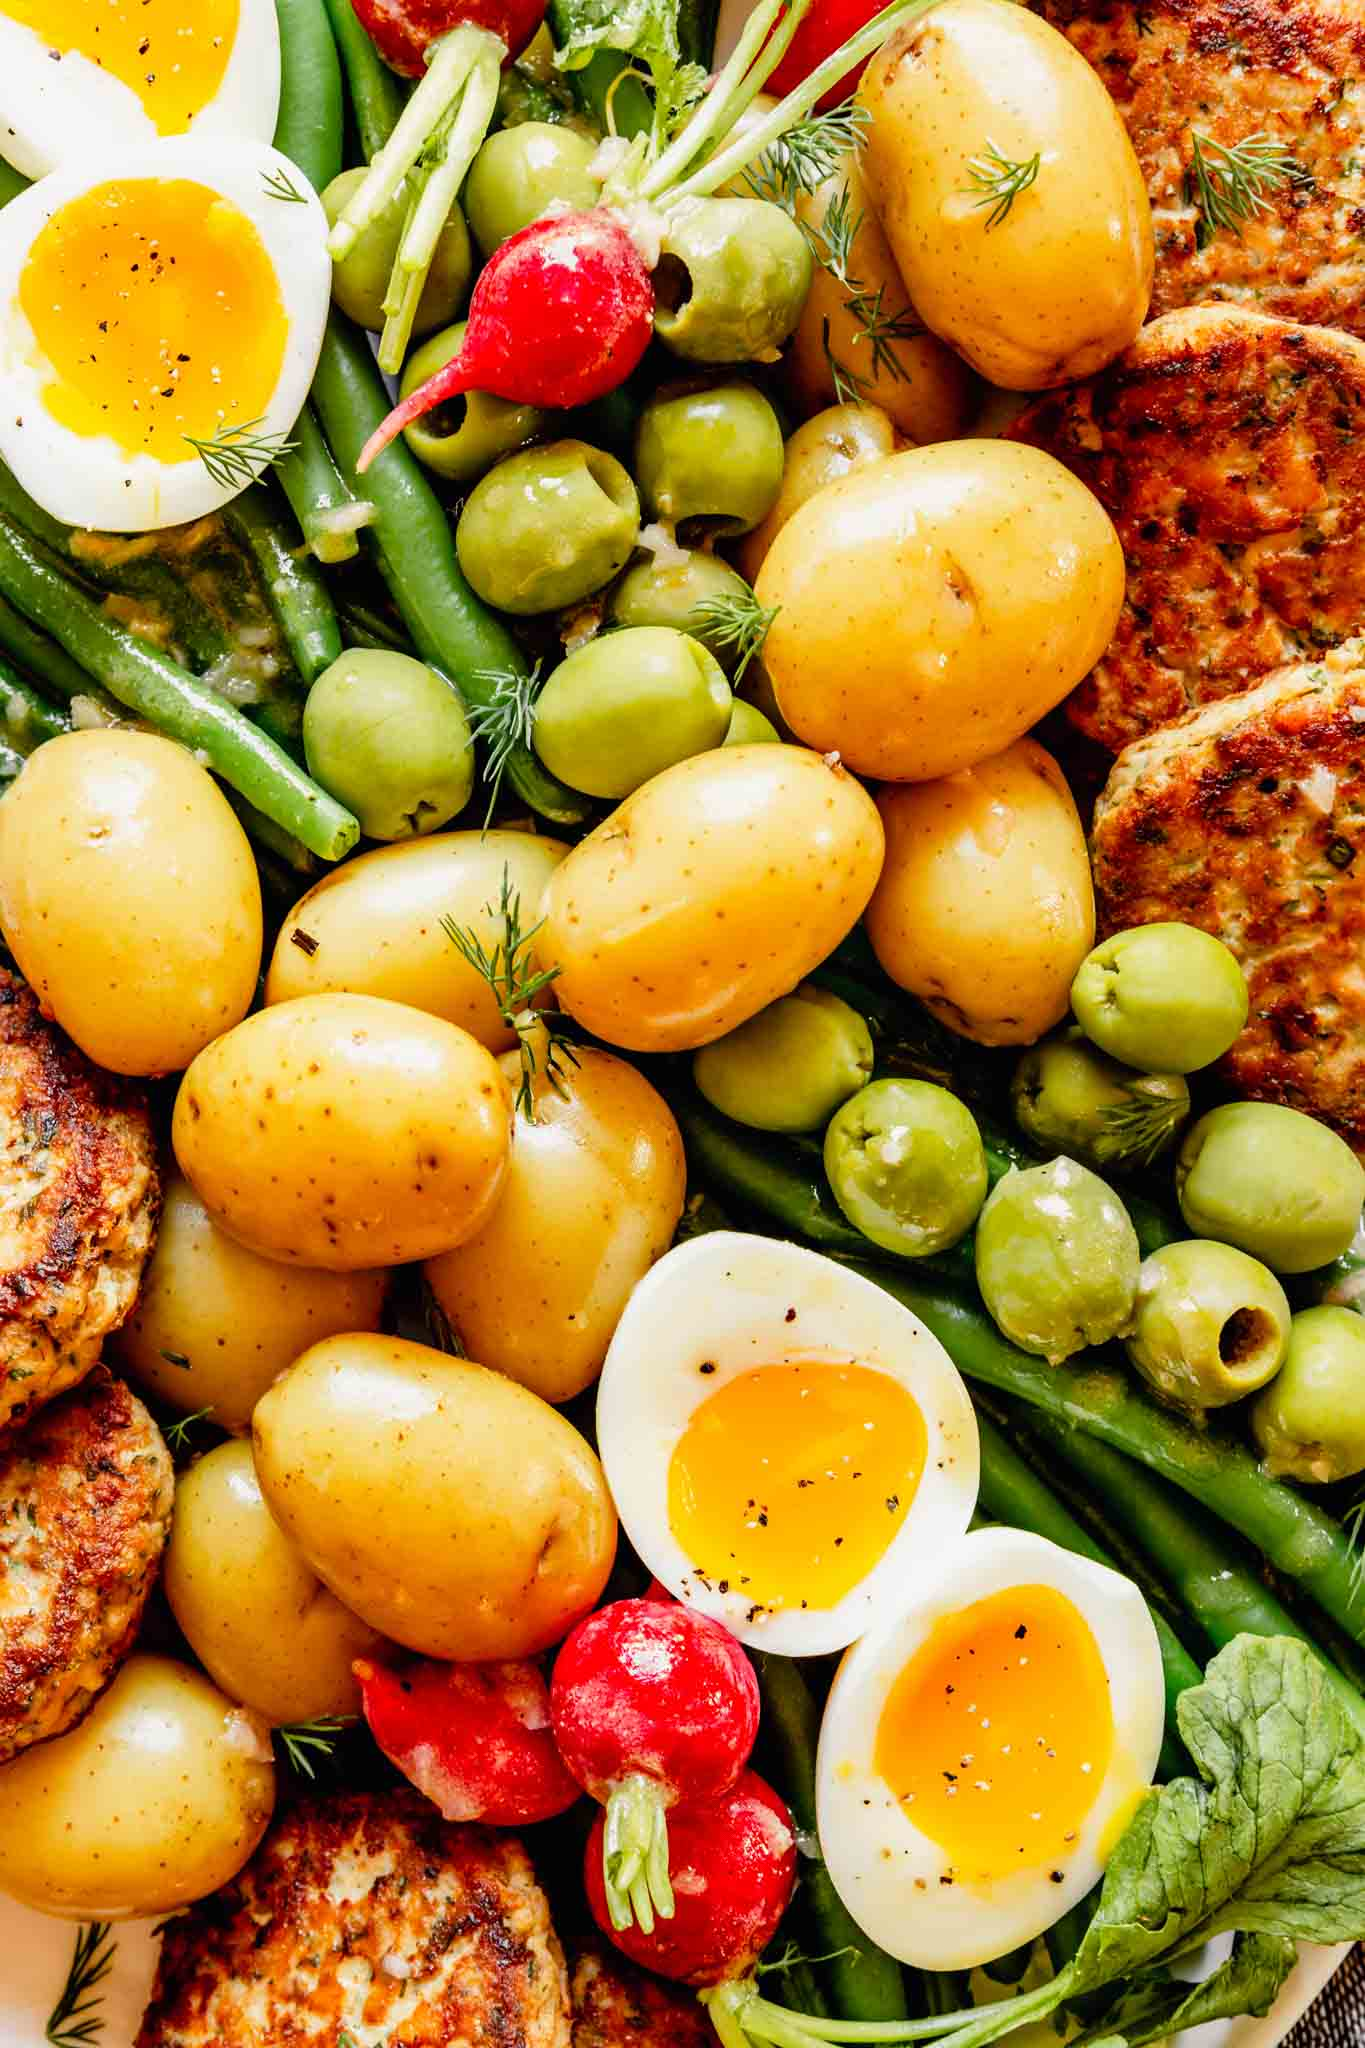 Close up photo of a nicoise salad featuring green beans, soft boiled eggs, salmon cakes, olives, radishes, and gold potatoes.